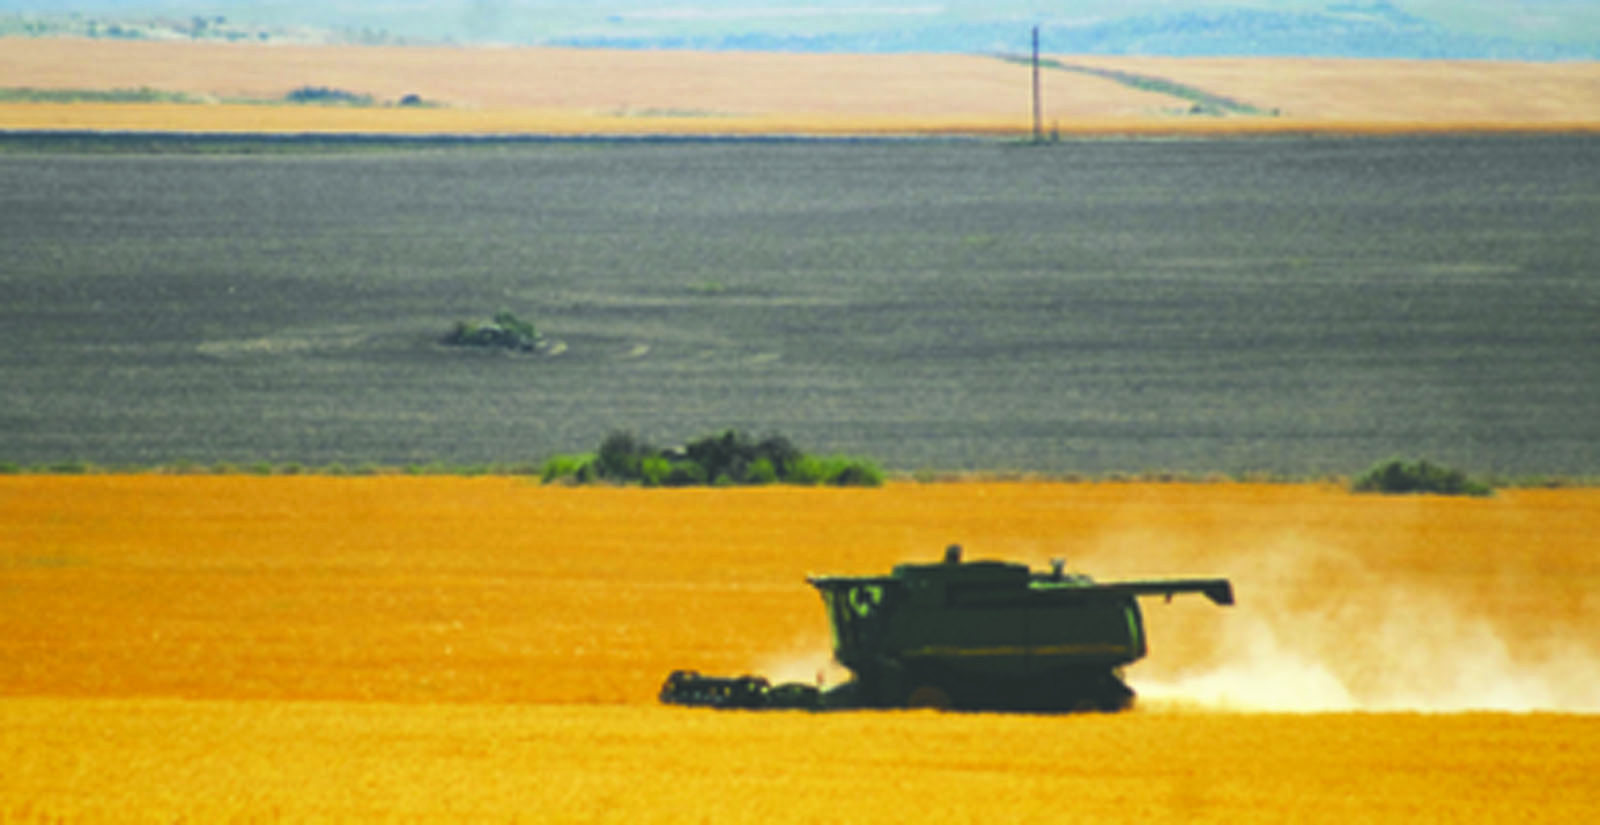 A combine works its way through a field of wheat on the Waterville plateau at Mansfield last Thursday, July 27. The Central Washington Grain Growers at Mansfield recorded the first trailer load of canola at the elevator on July 17, and the first trailer load of wheat on July 26.